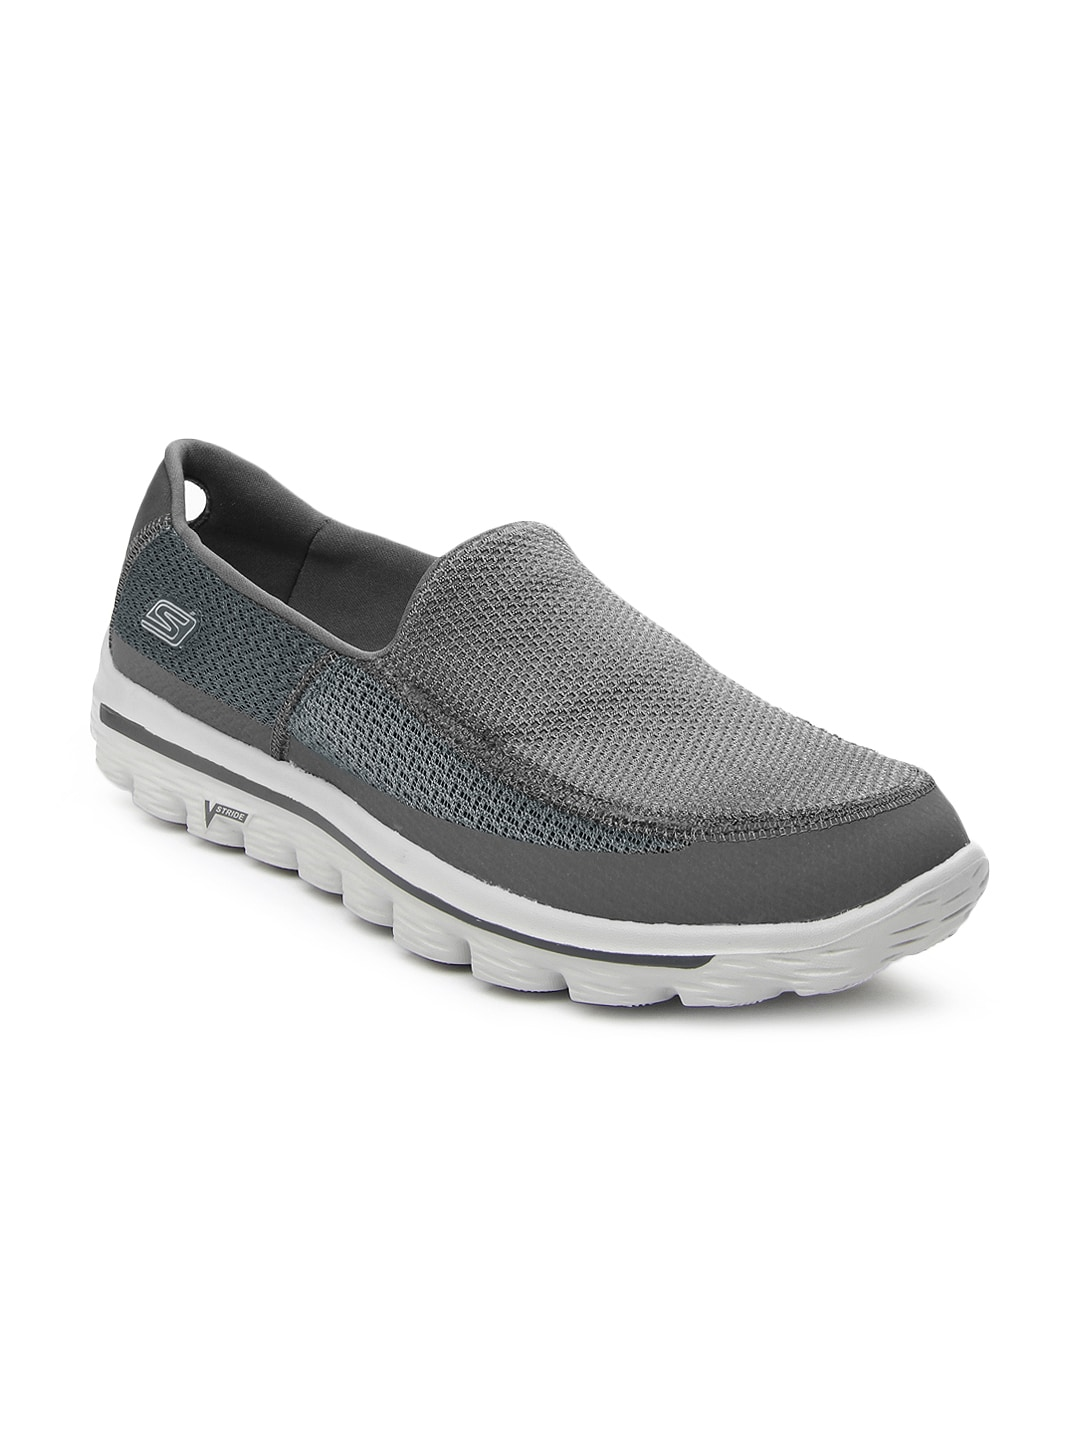 ea74fe603fe0 Buy Skechers Men Grey Go Walk 2 Sports Shoes 1405780 for men ...